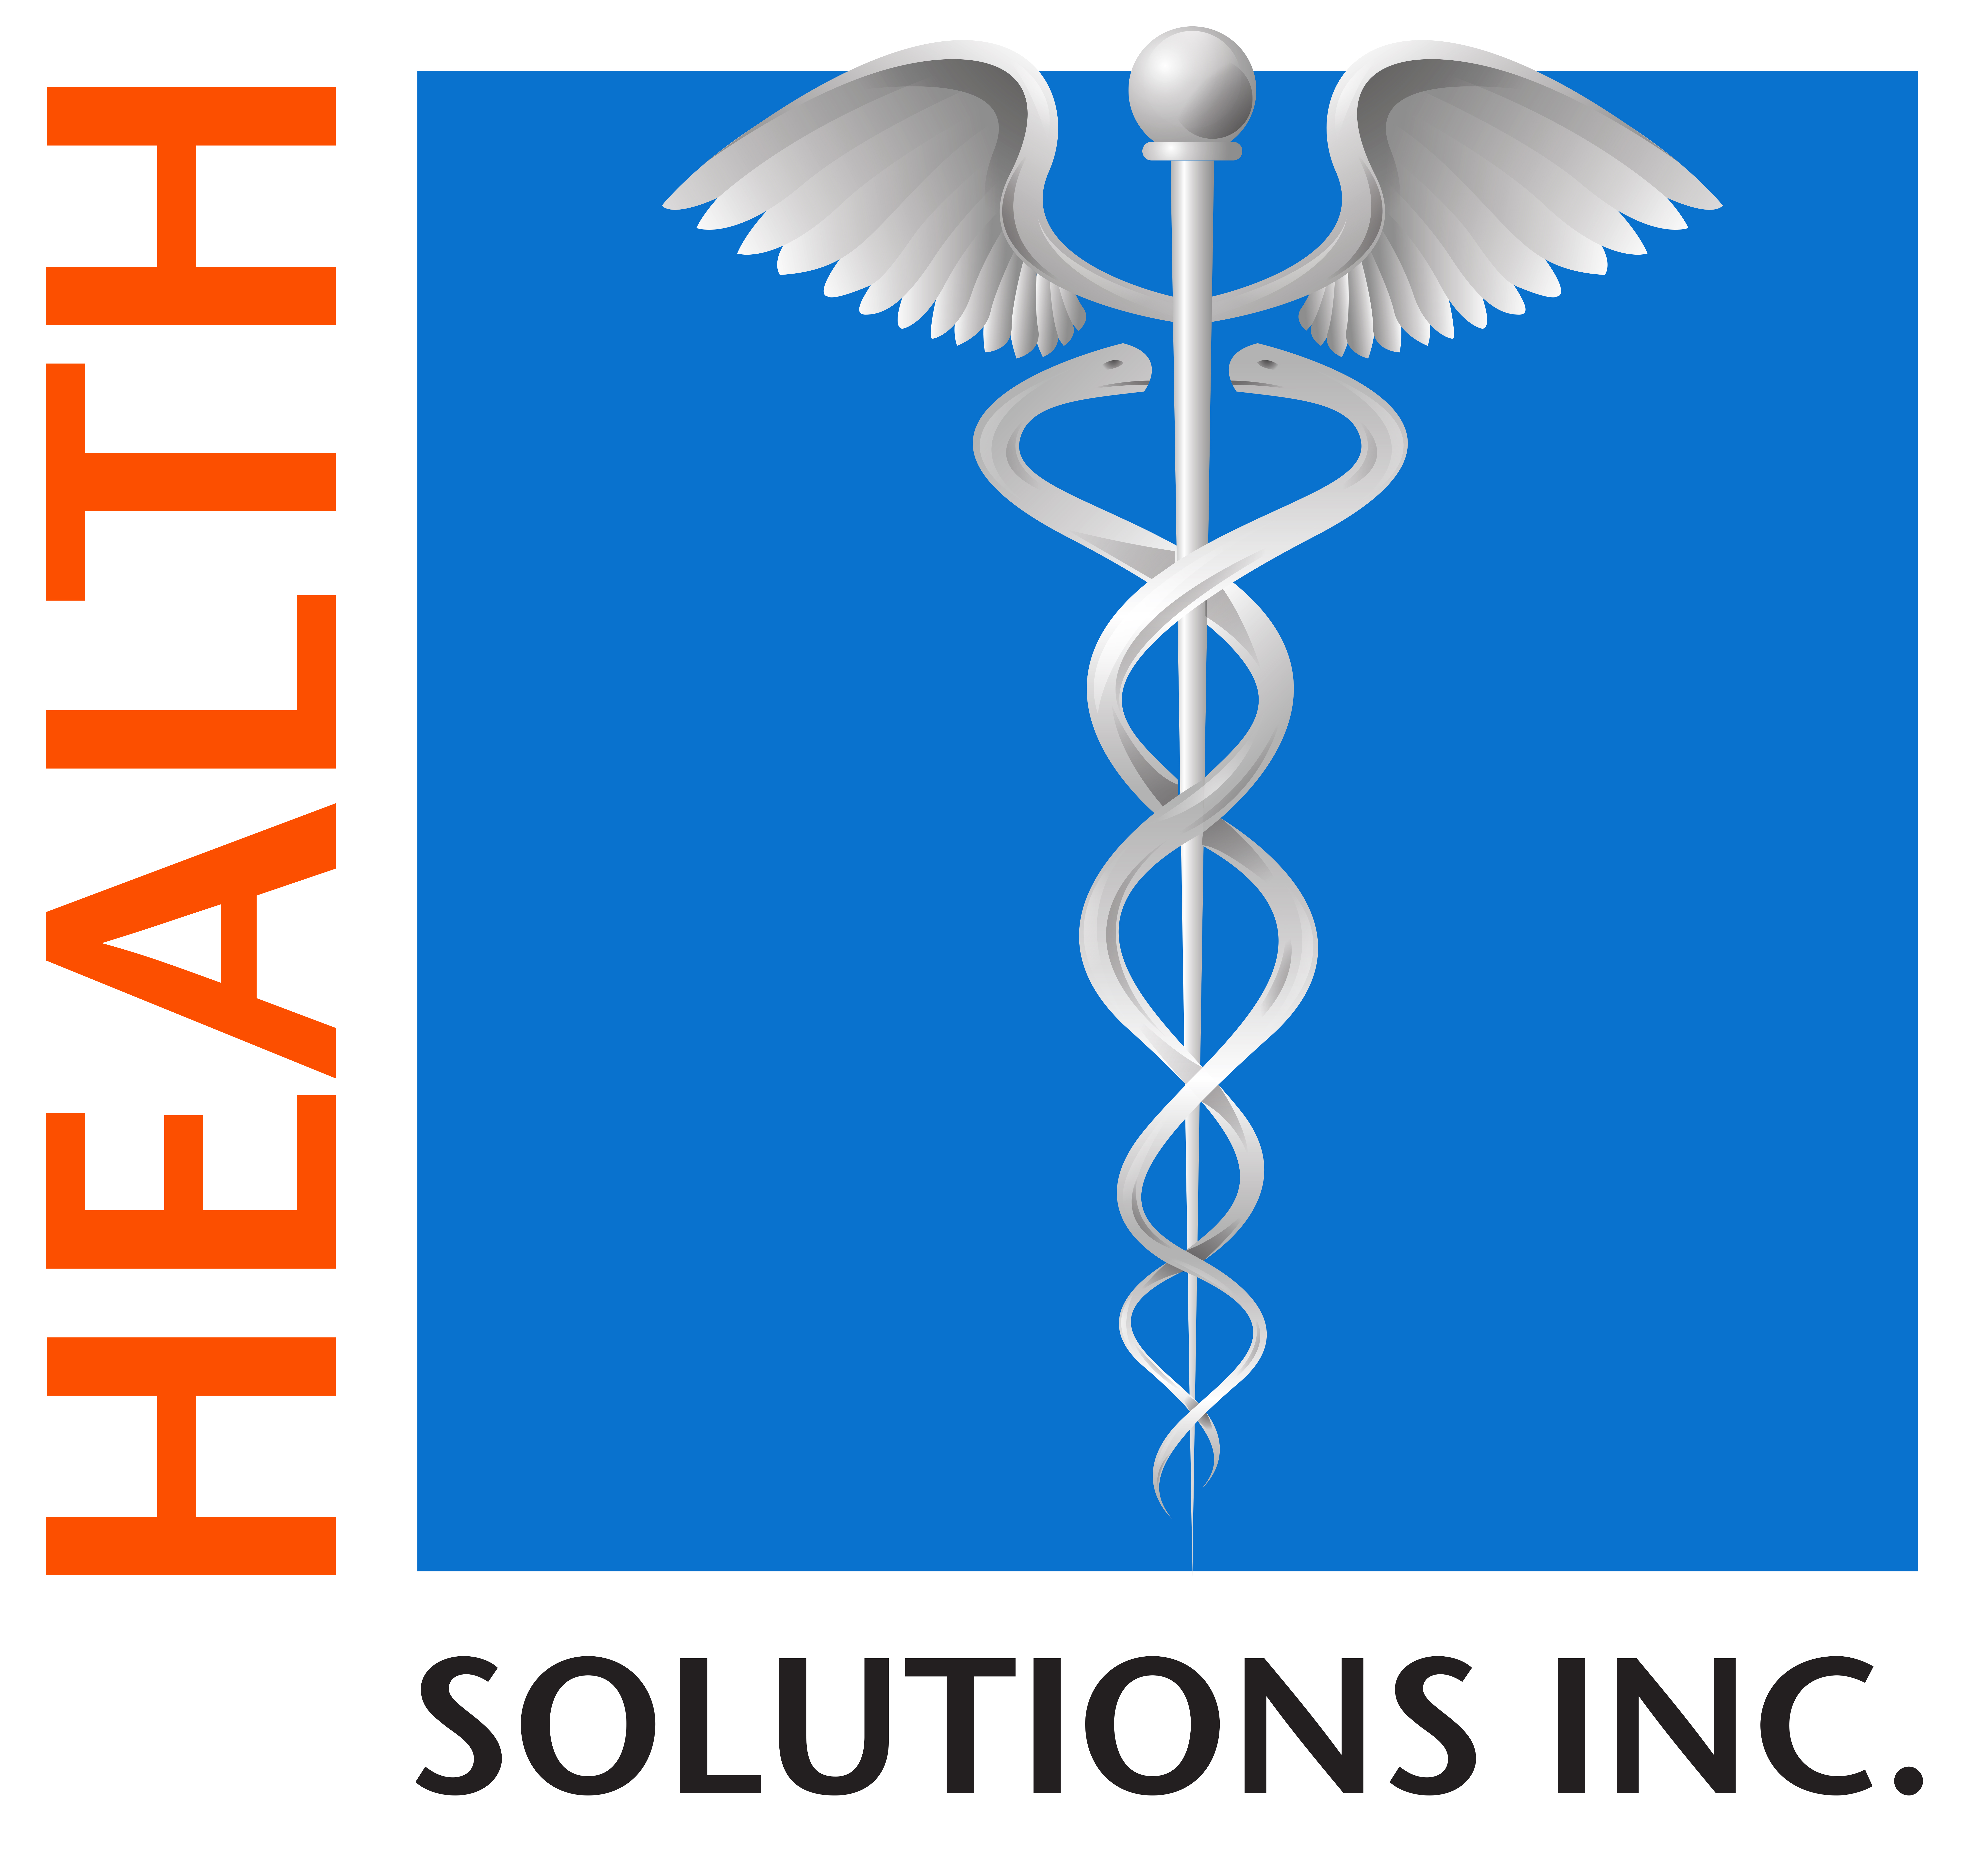 May 2013 Health Solutions Inc